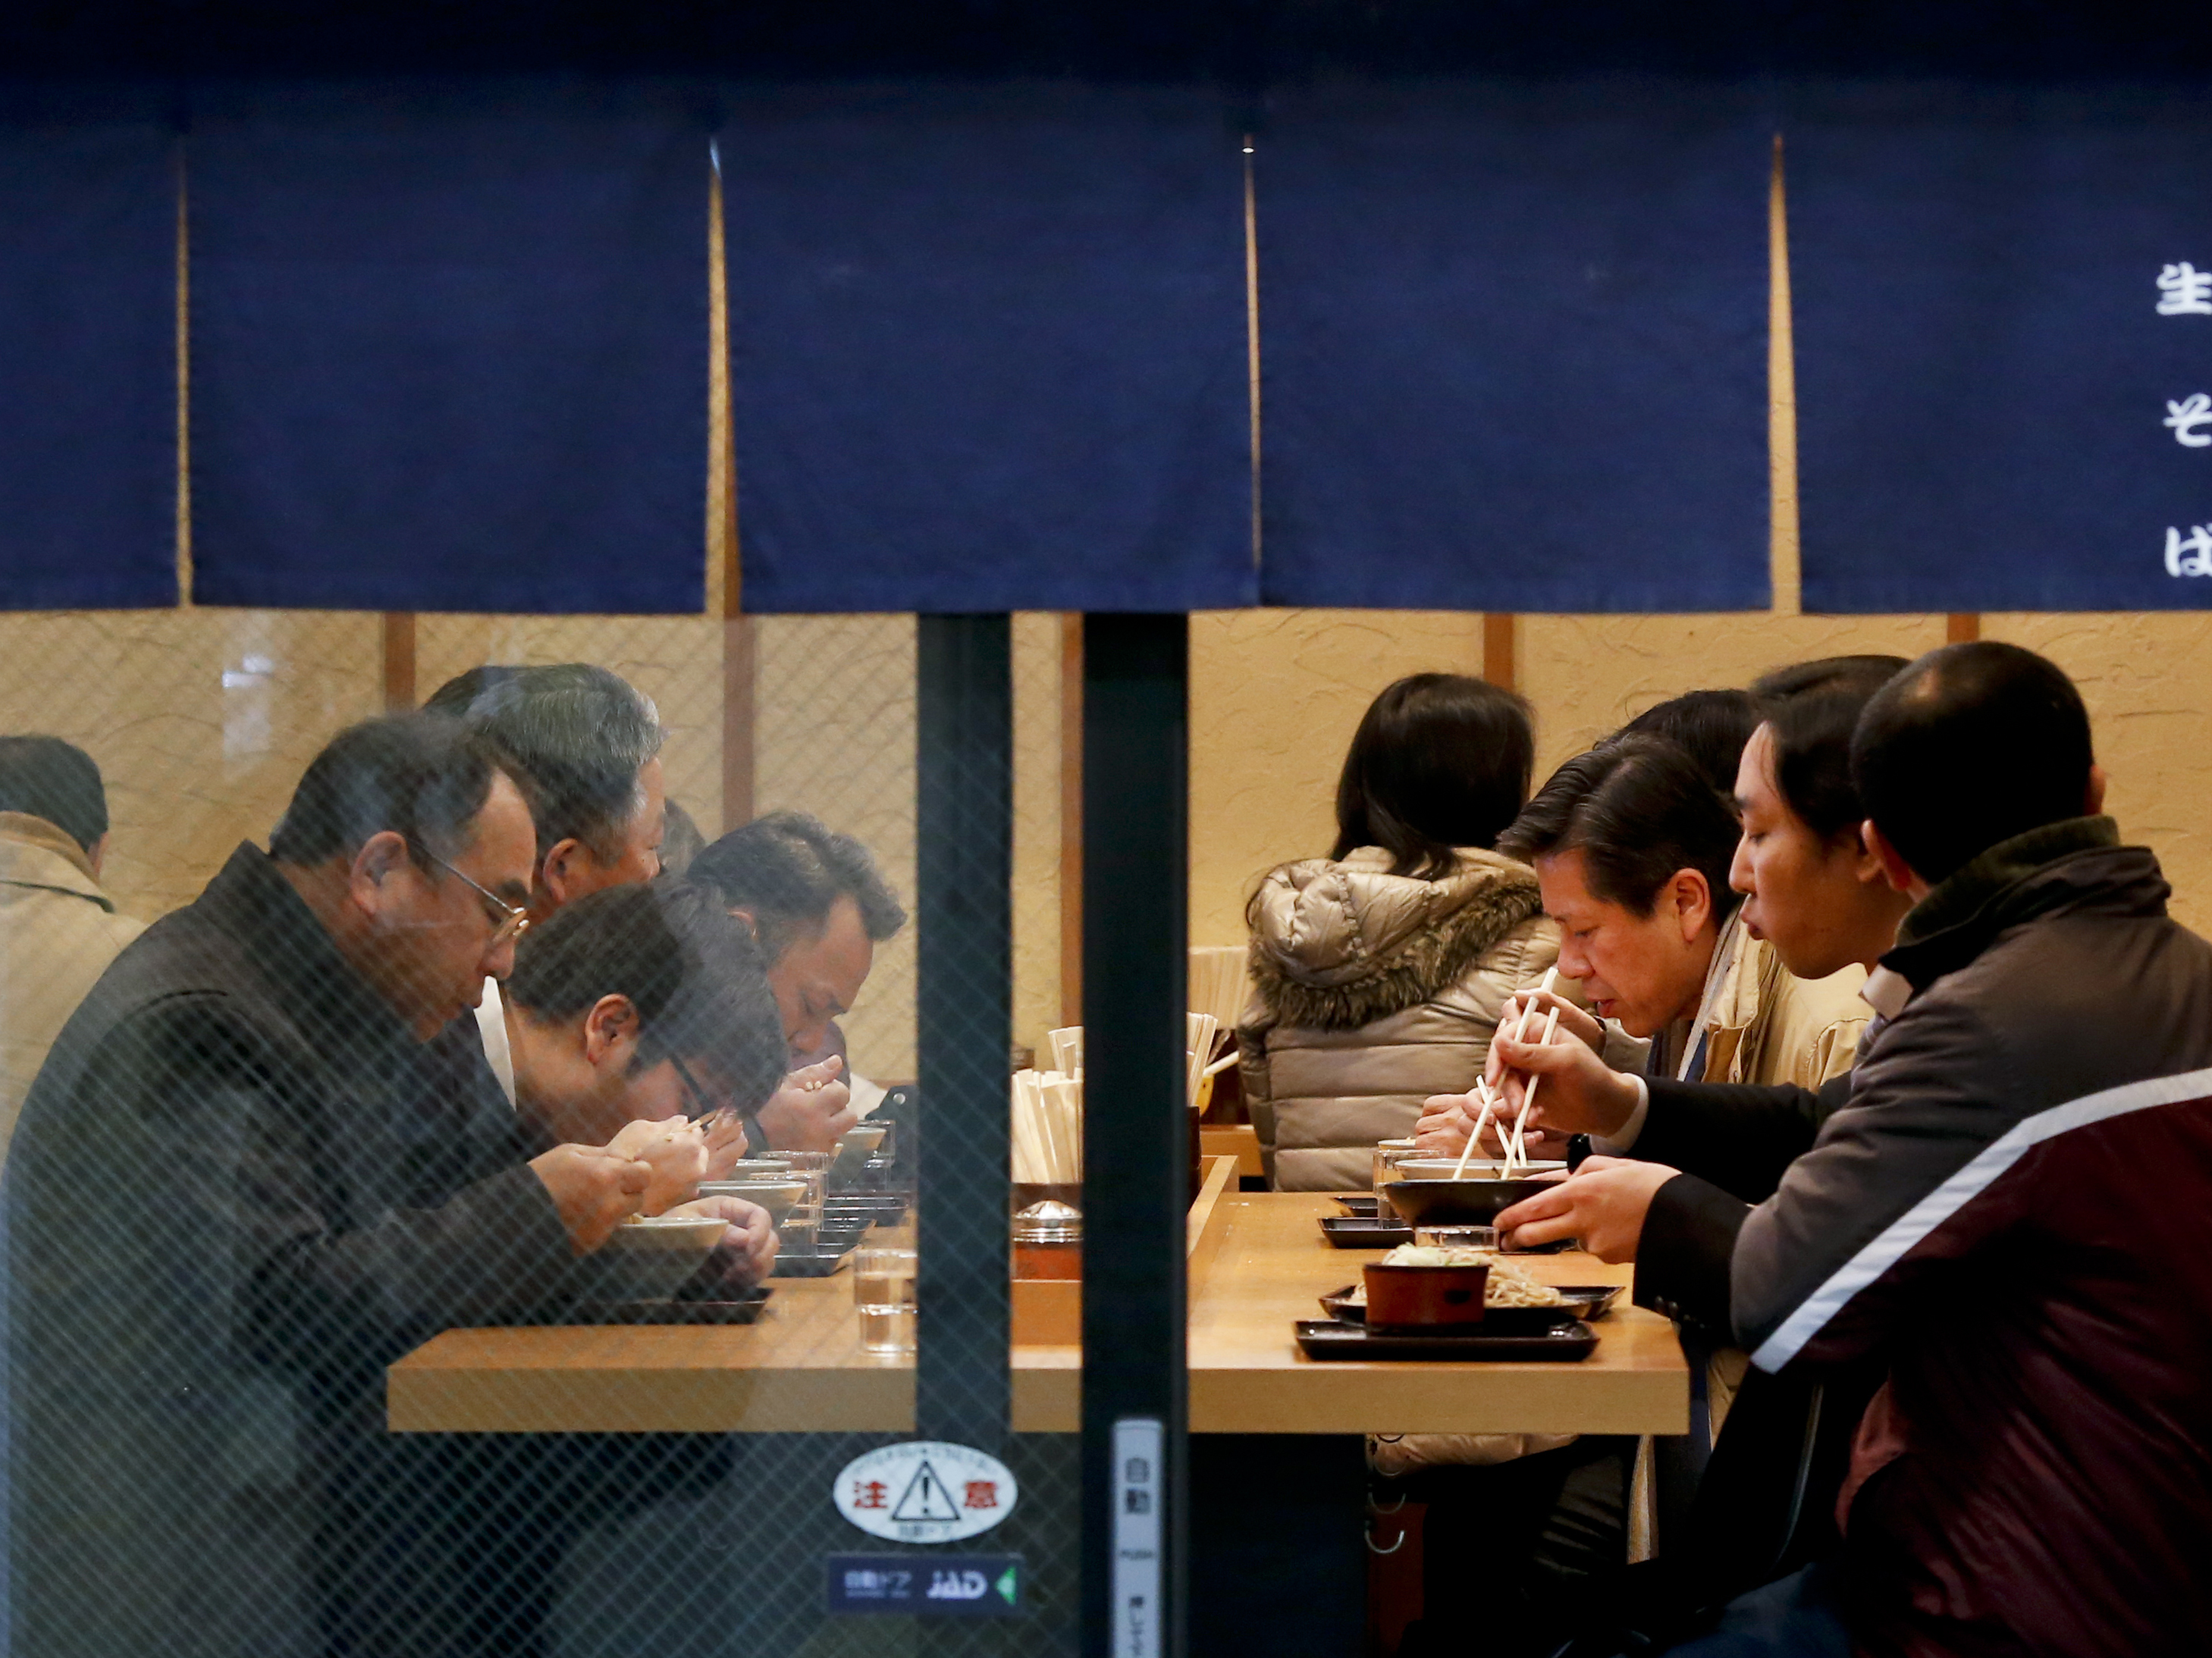 People slurp soup and pluck noodles at a soba and udon restaurant in Tokyo in February 2016. (Shuji Kajiyama/AP)